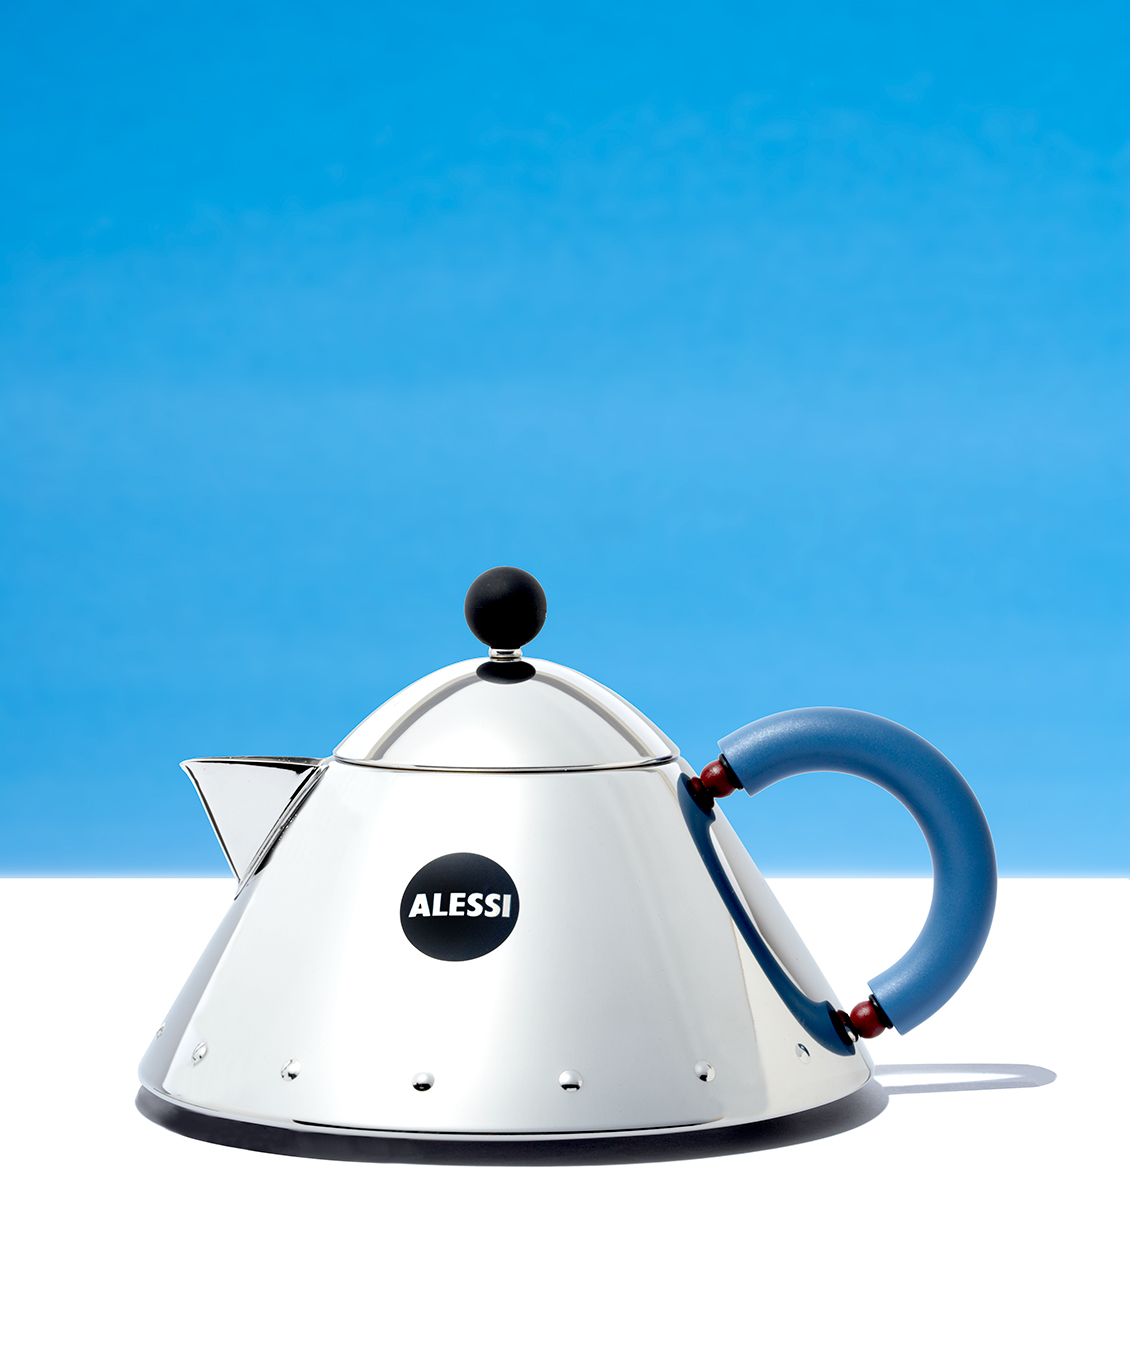 vintage Alessi teapot professional product photography